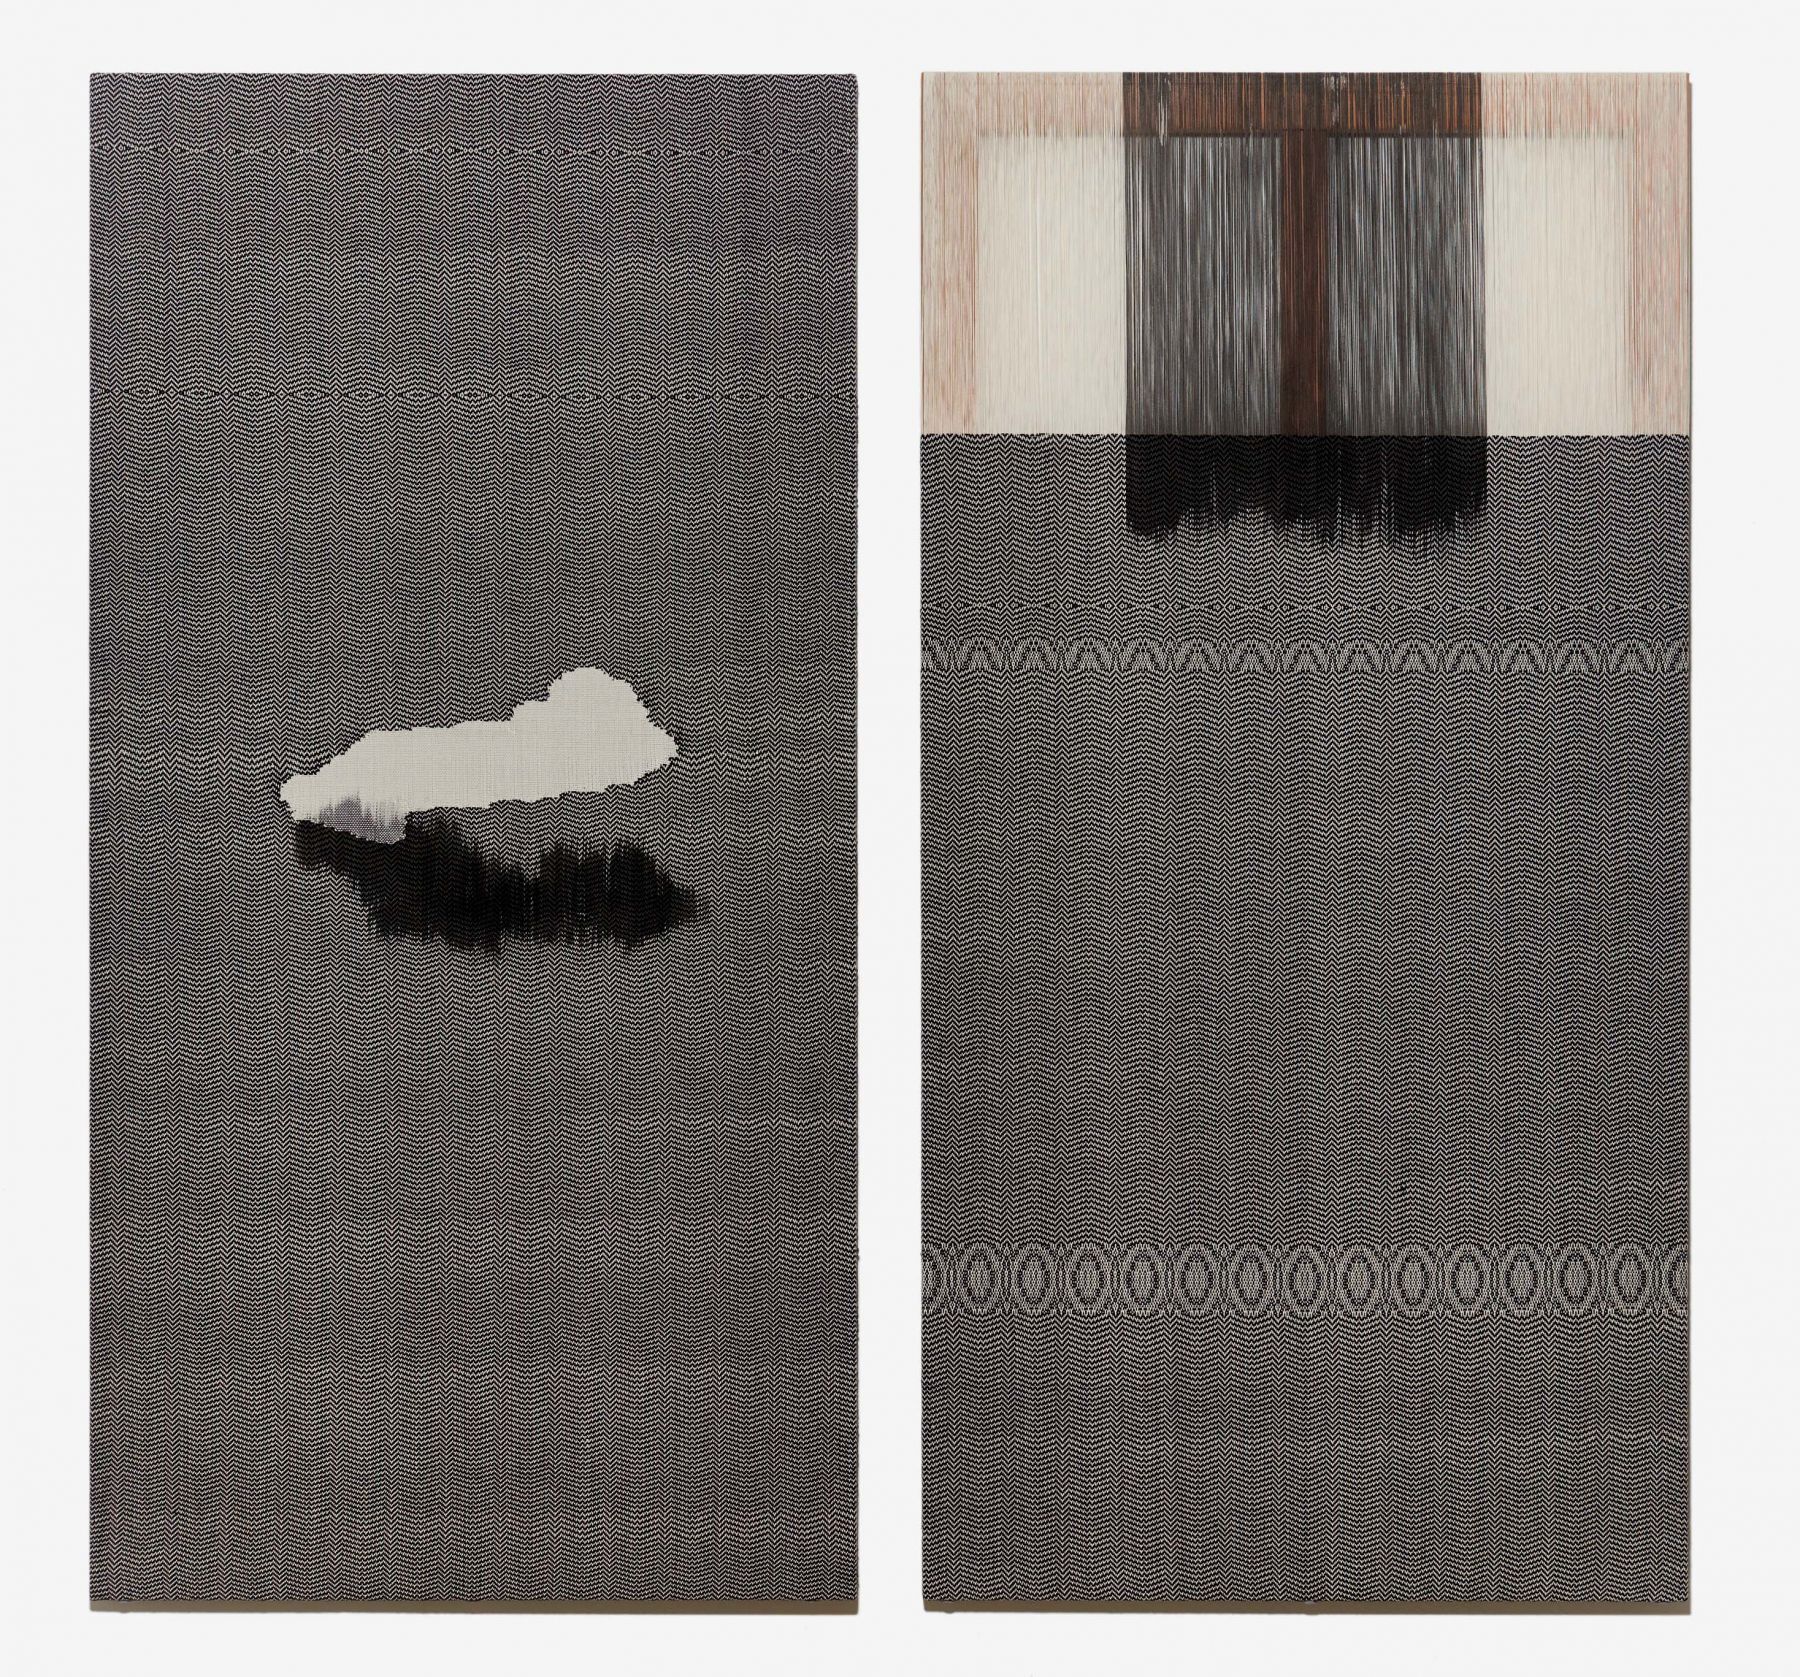 CHA Seungean, Holy day-2,3 (diptych), 2015, cotton yarn, polyester yarn, dye, 194 x 97 cm / 76.38 x 38.20 in.